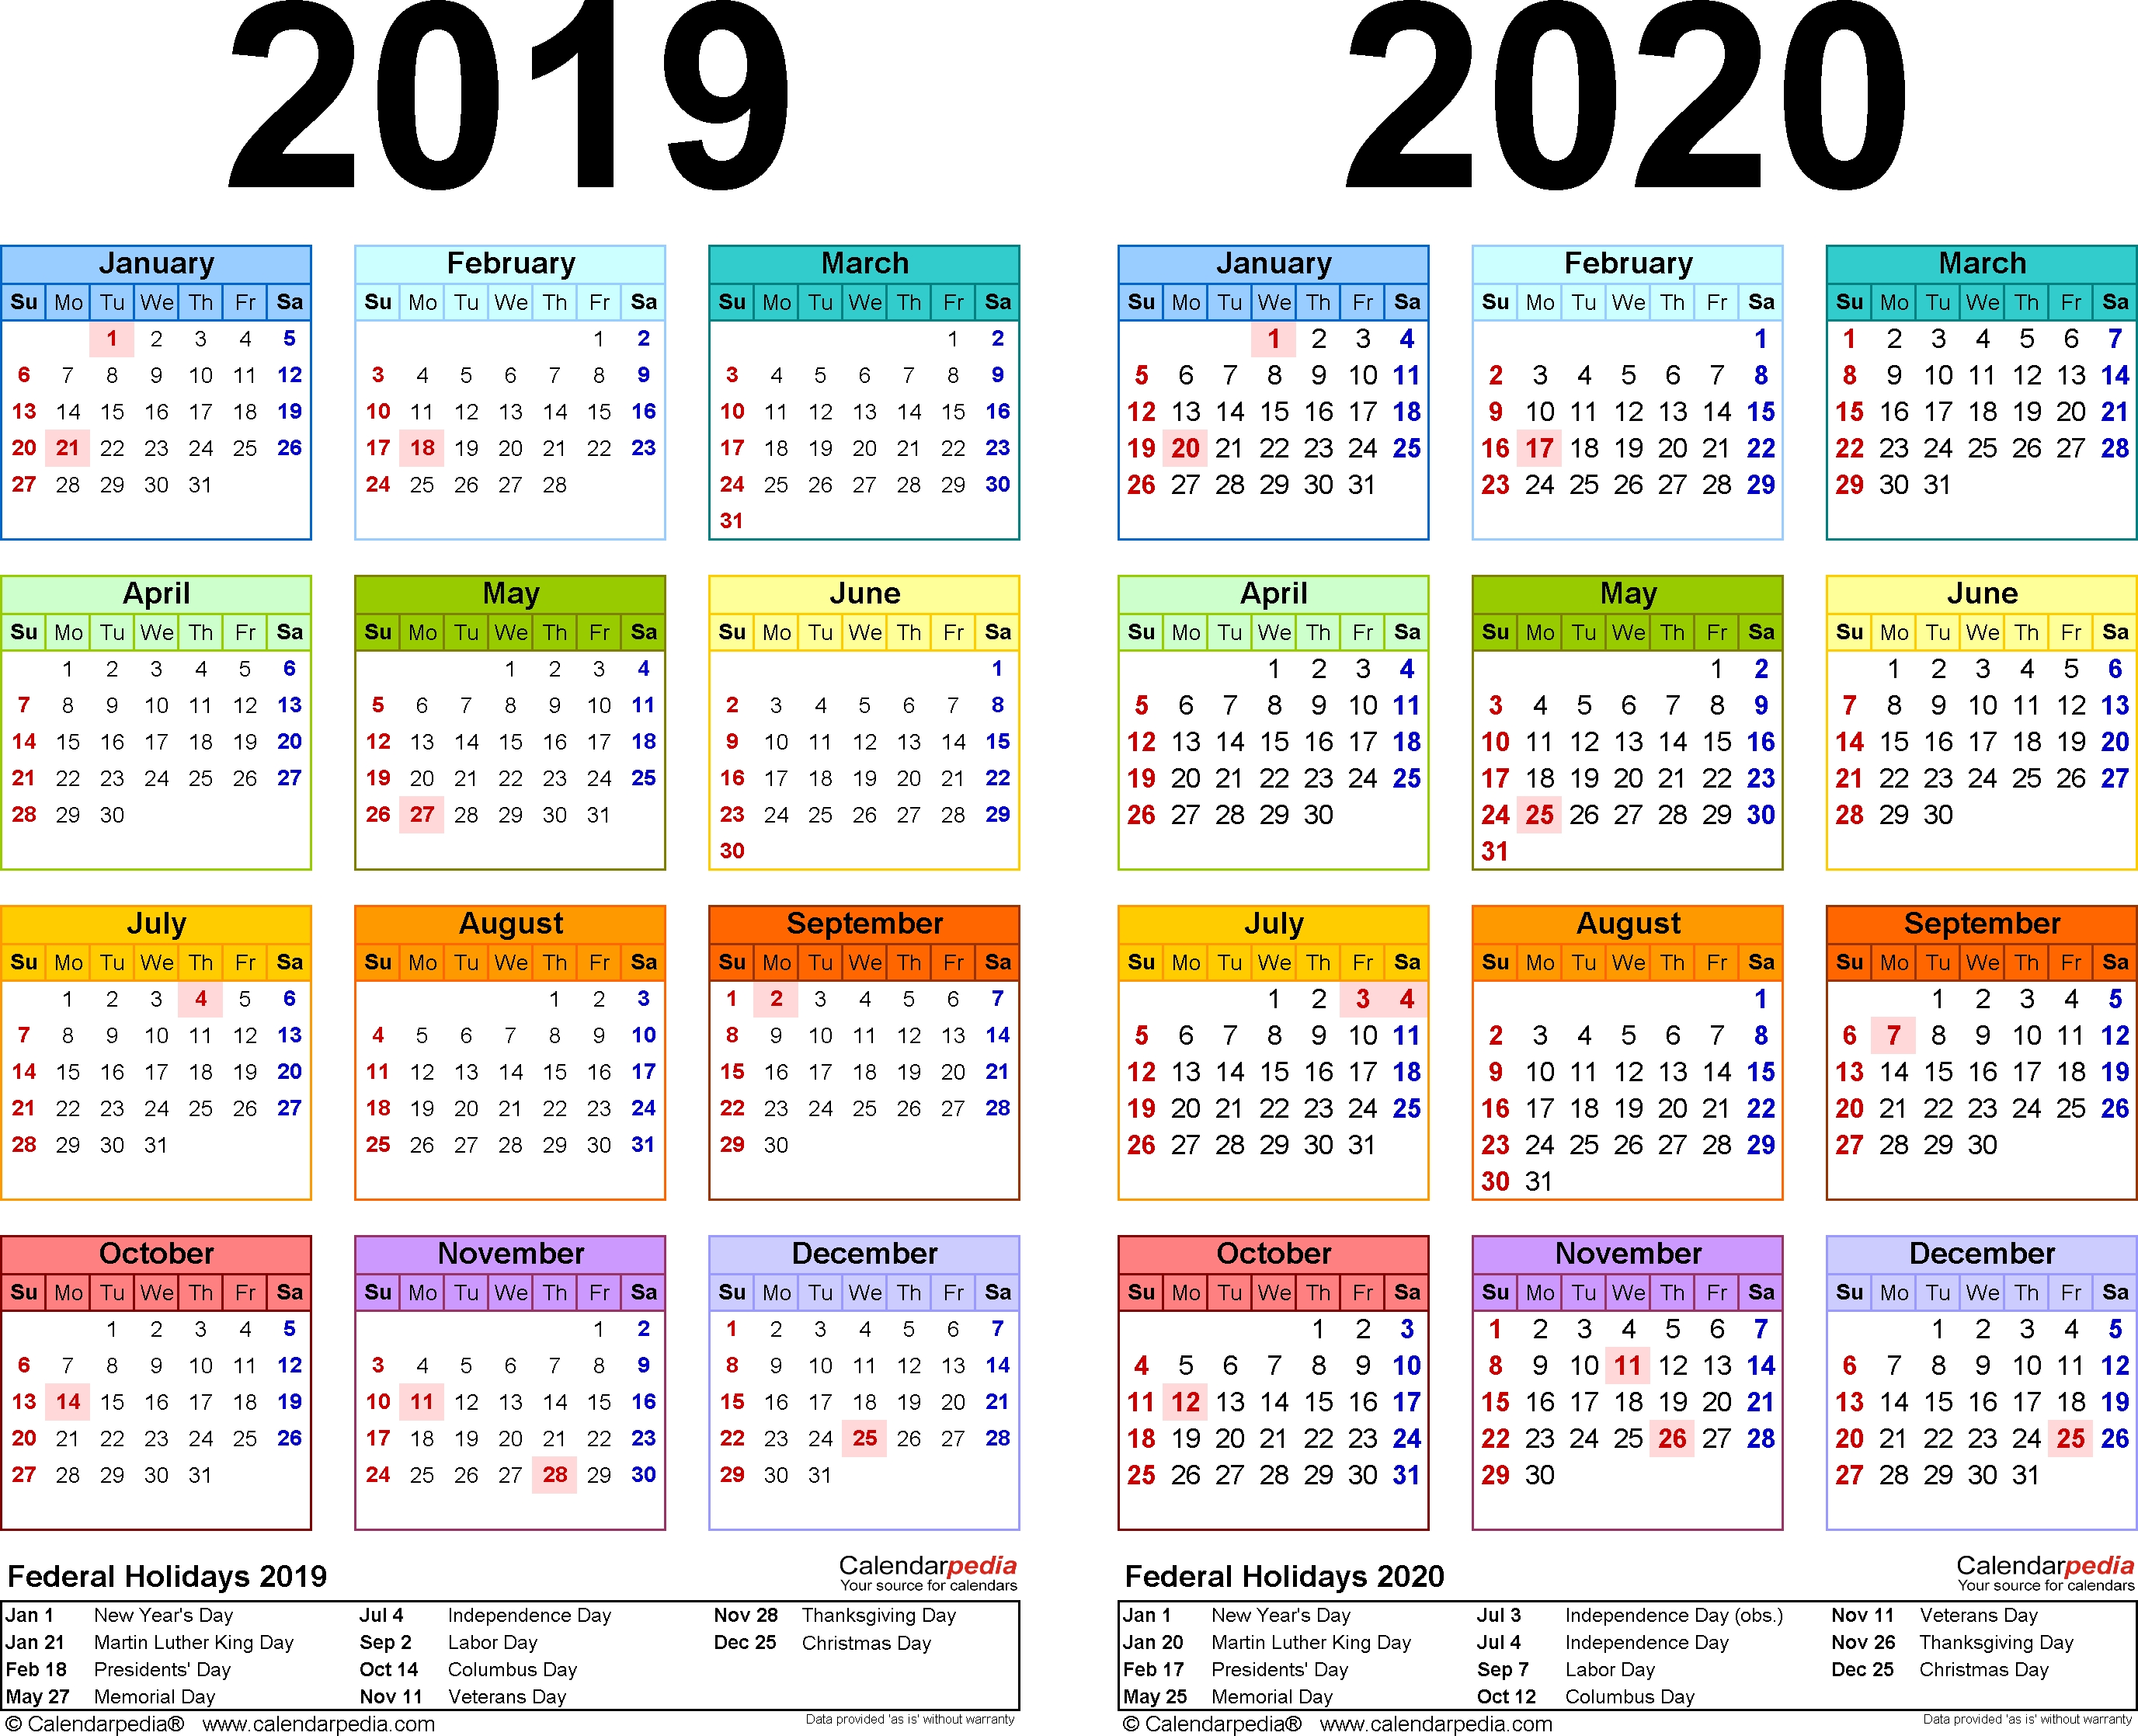 2019-2020 Calendar - Free Printable Two-Year Word Calendars intended for 2019-2020 Word Printable Calendar